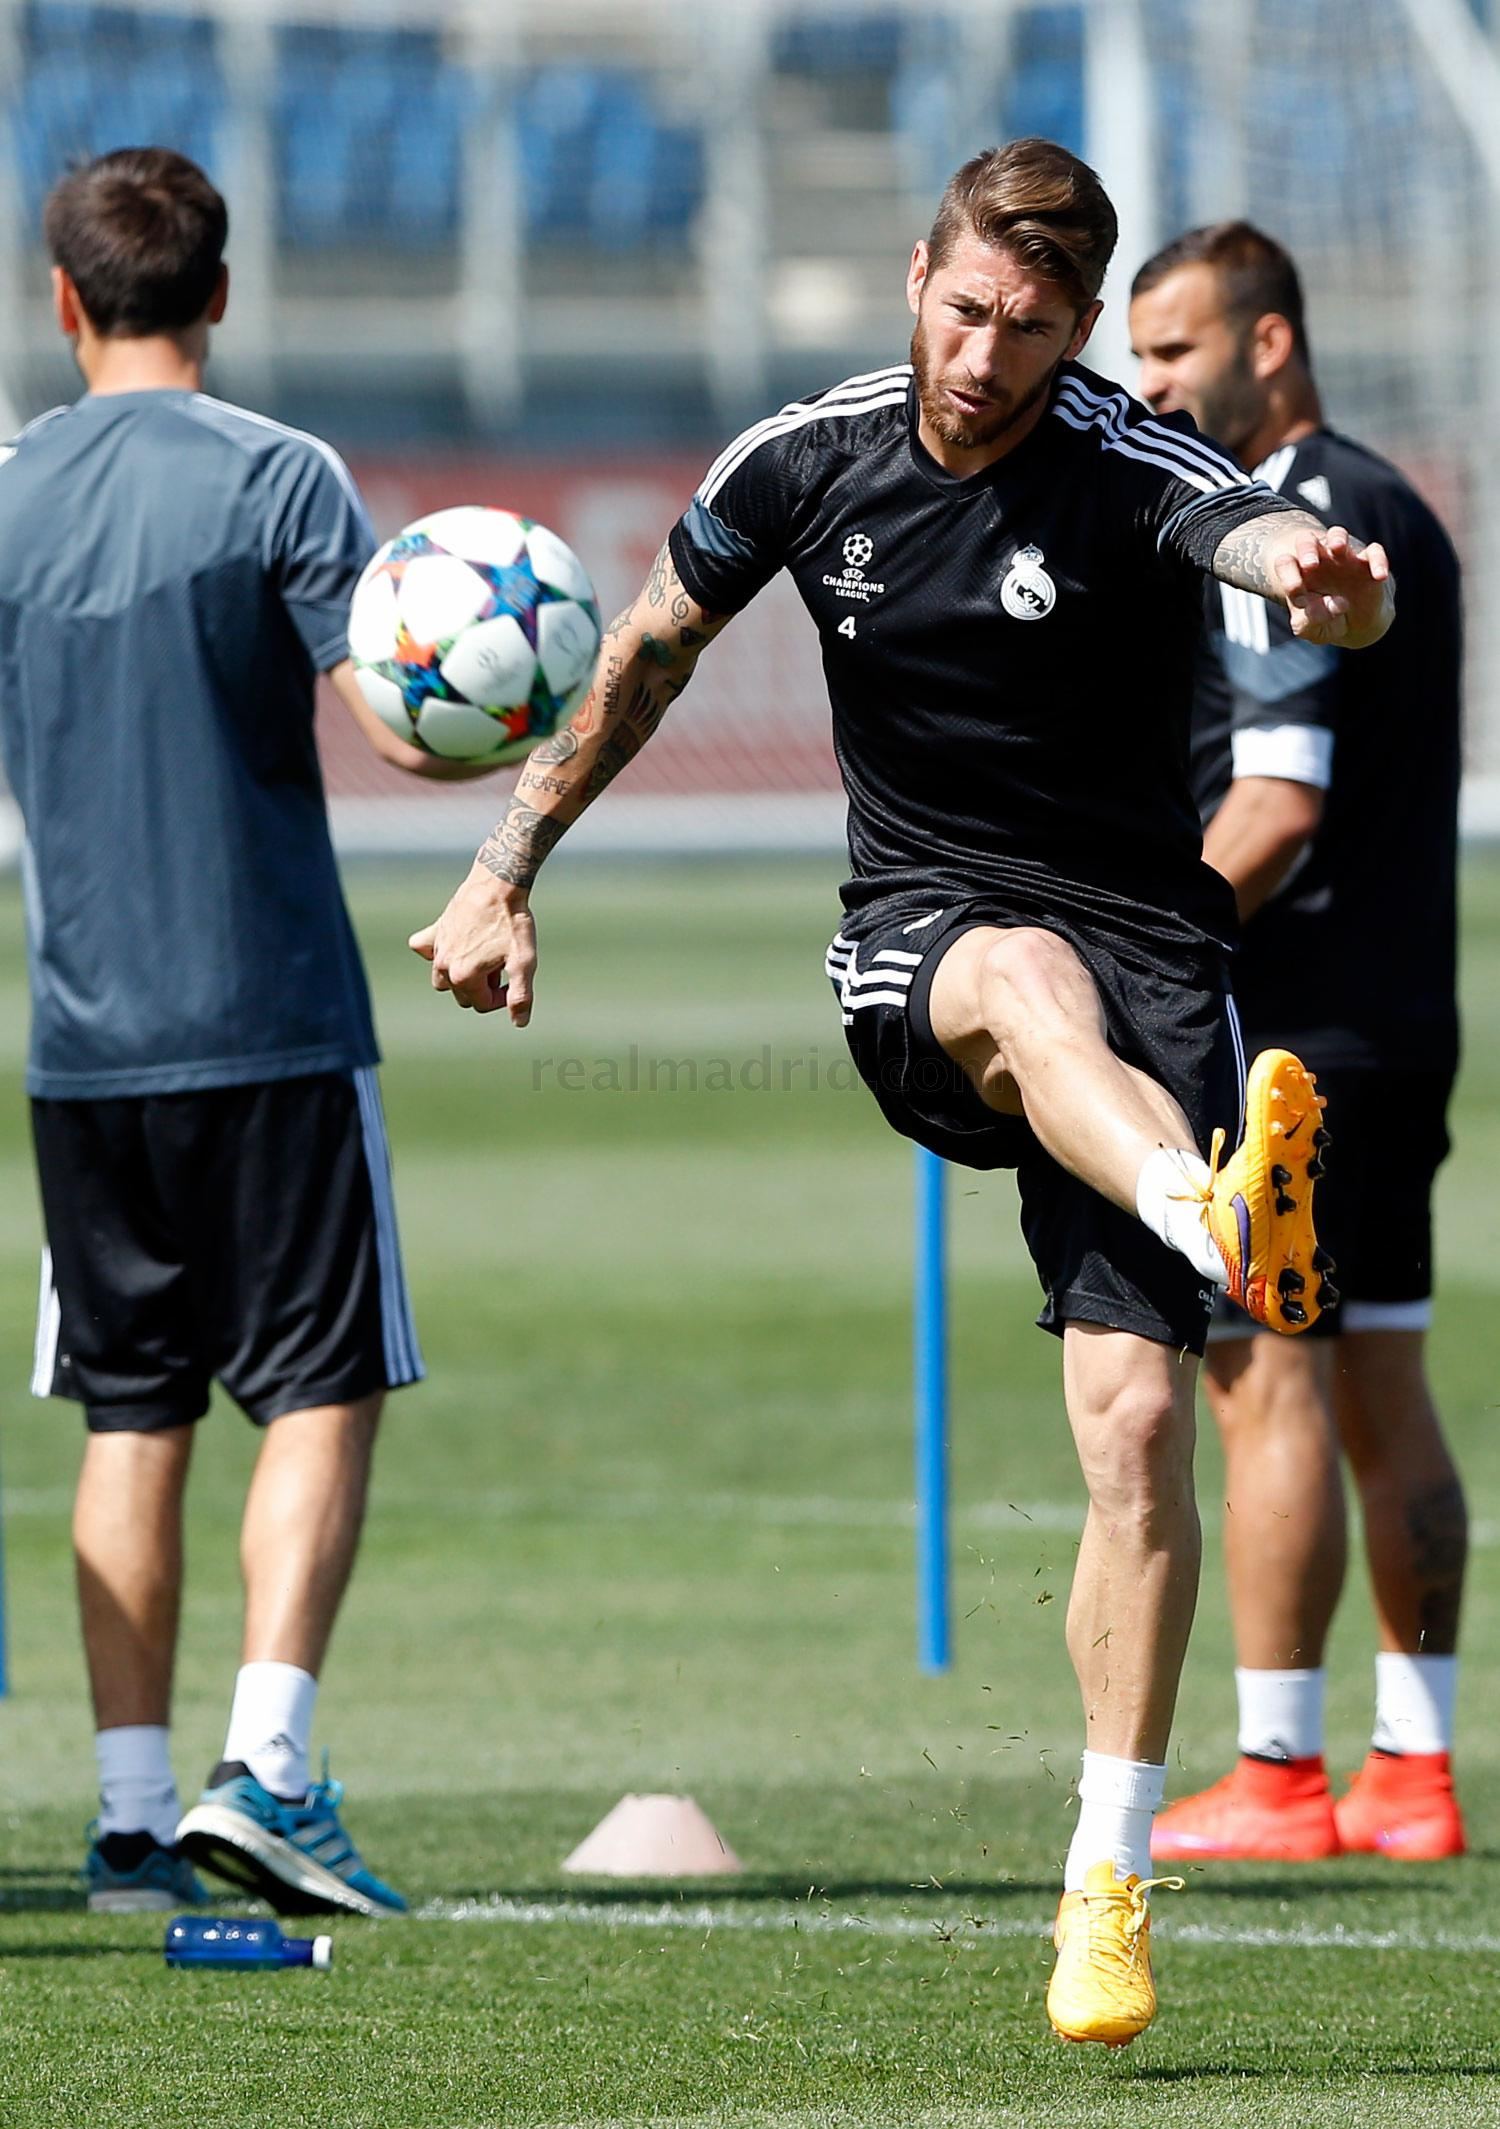 Real Madrid - Entrenamiento del Real Madrid - 12-05-2015